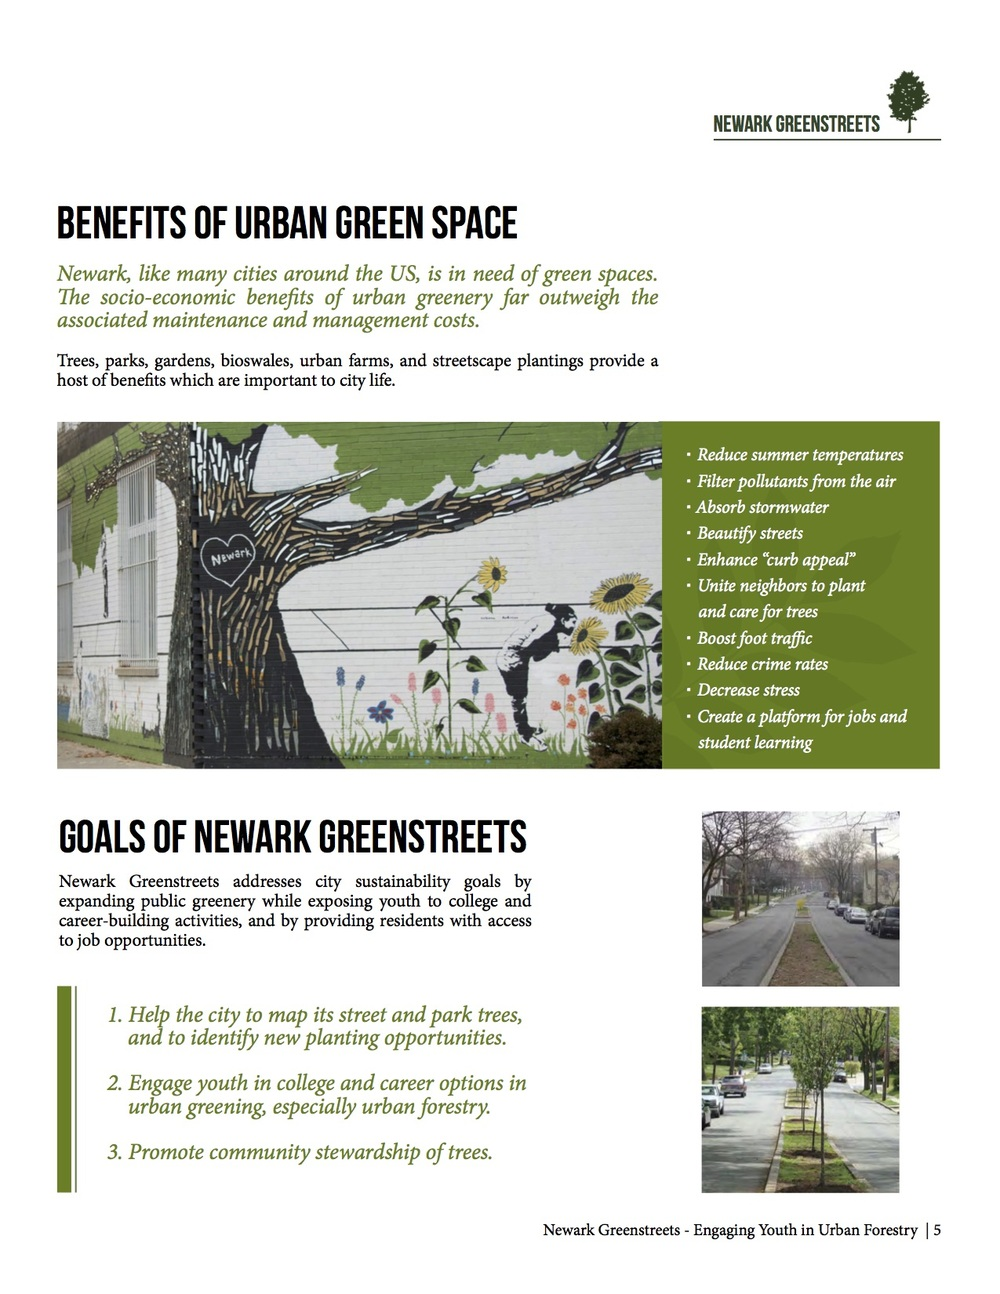 Grow Your Own_Newark Greenstreets-5.jpg